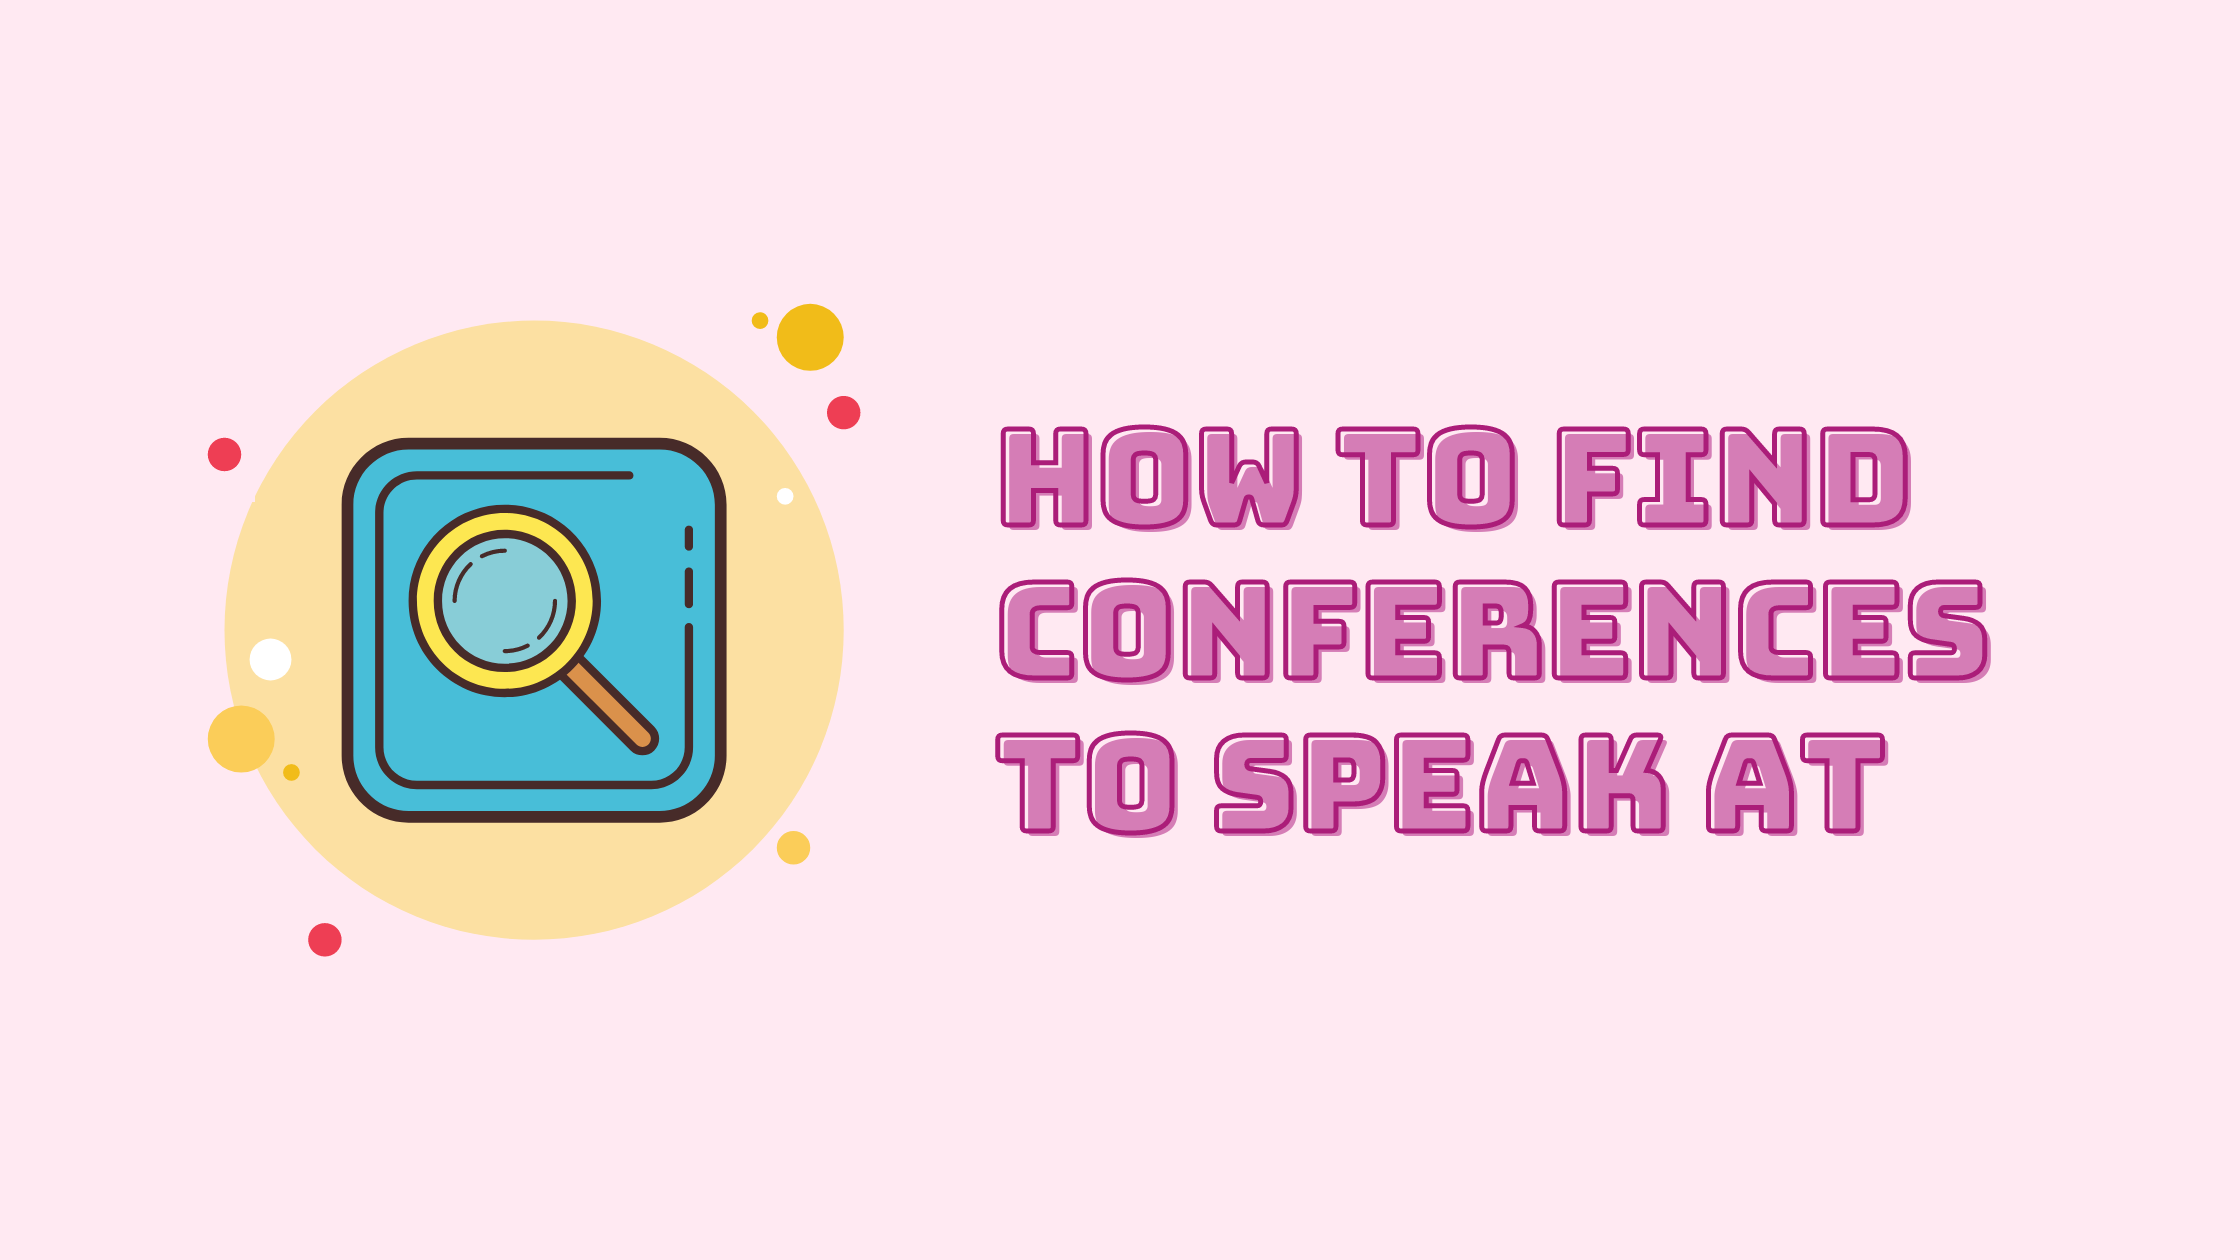 How To Find Conferences To Speak At